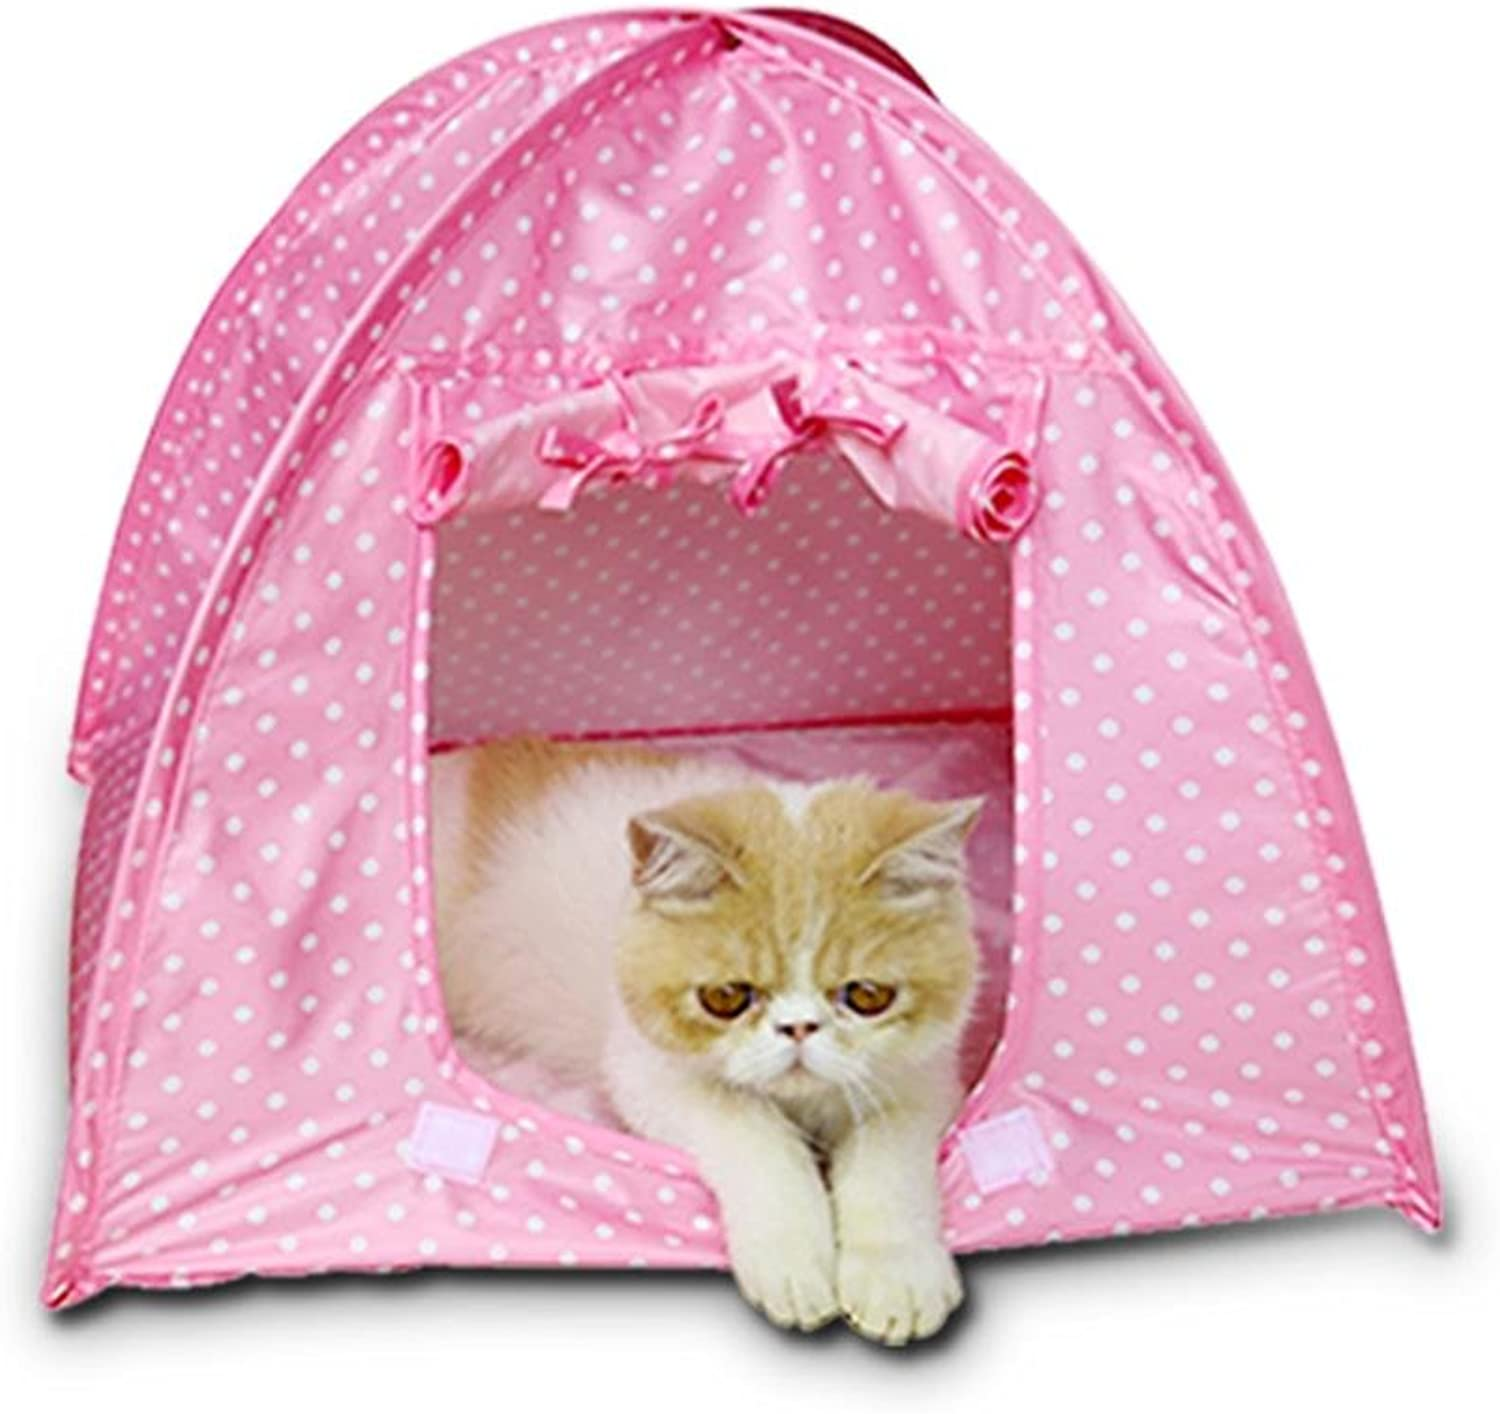 Pet Tent Outdoor Folding Cat Nest Pet Nest Mosquito Dotted Point Puppy House Cat Toy House , Pink